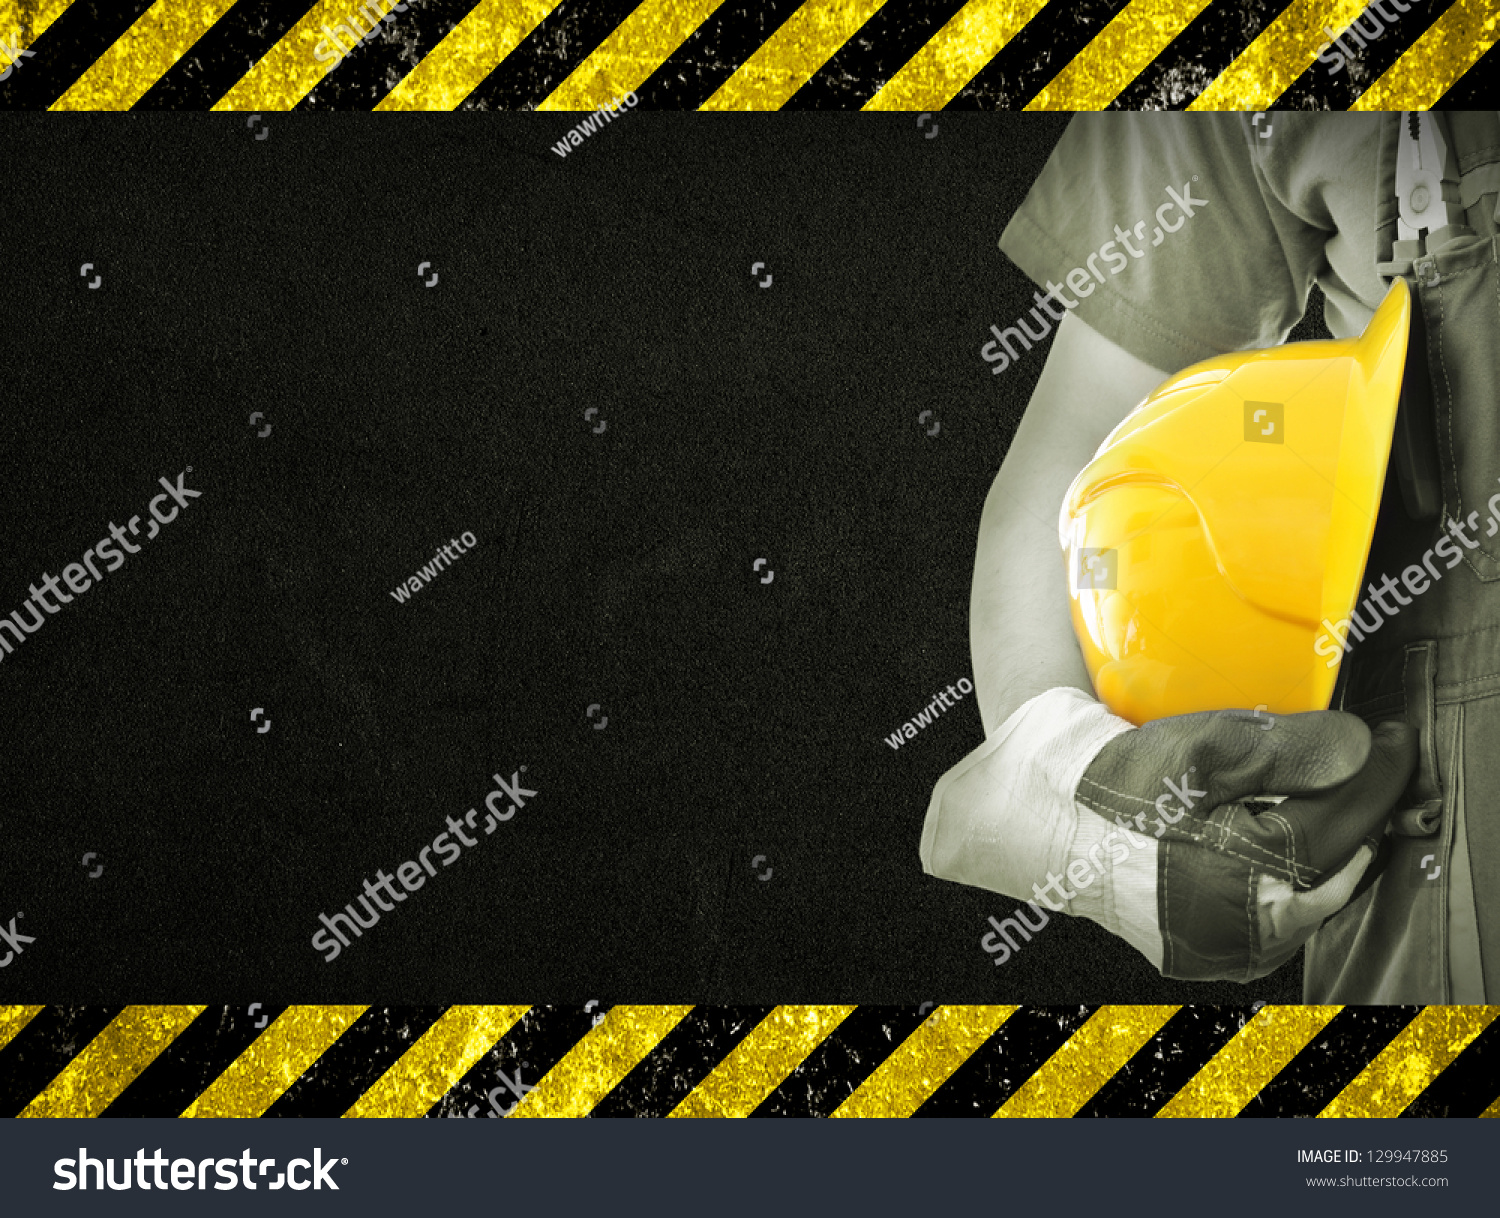 health and safety powerpoint templates - online image photo editor shutterstock editor